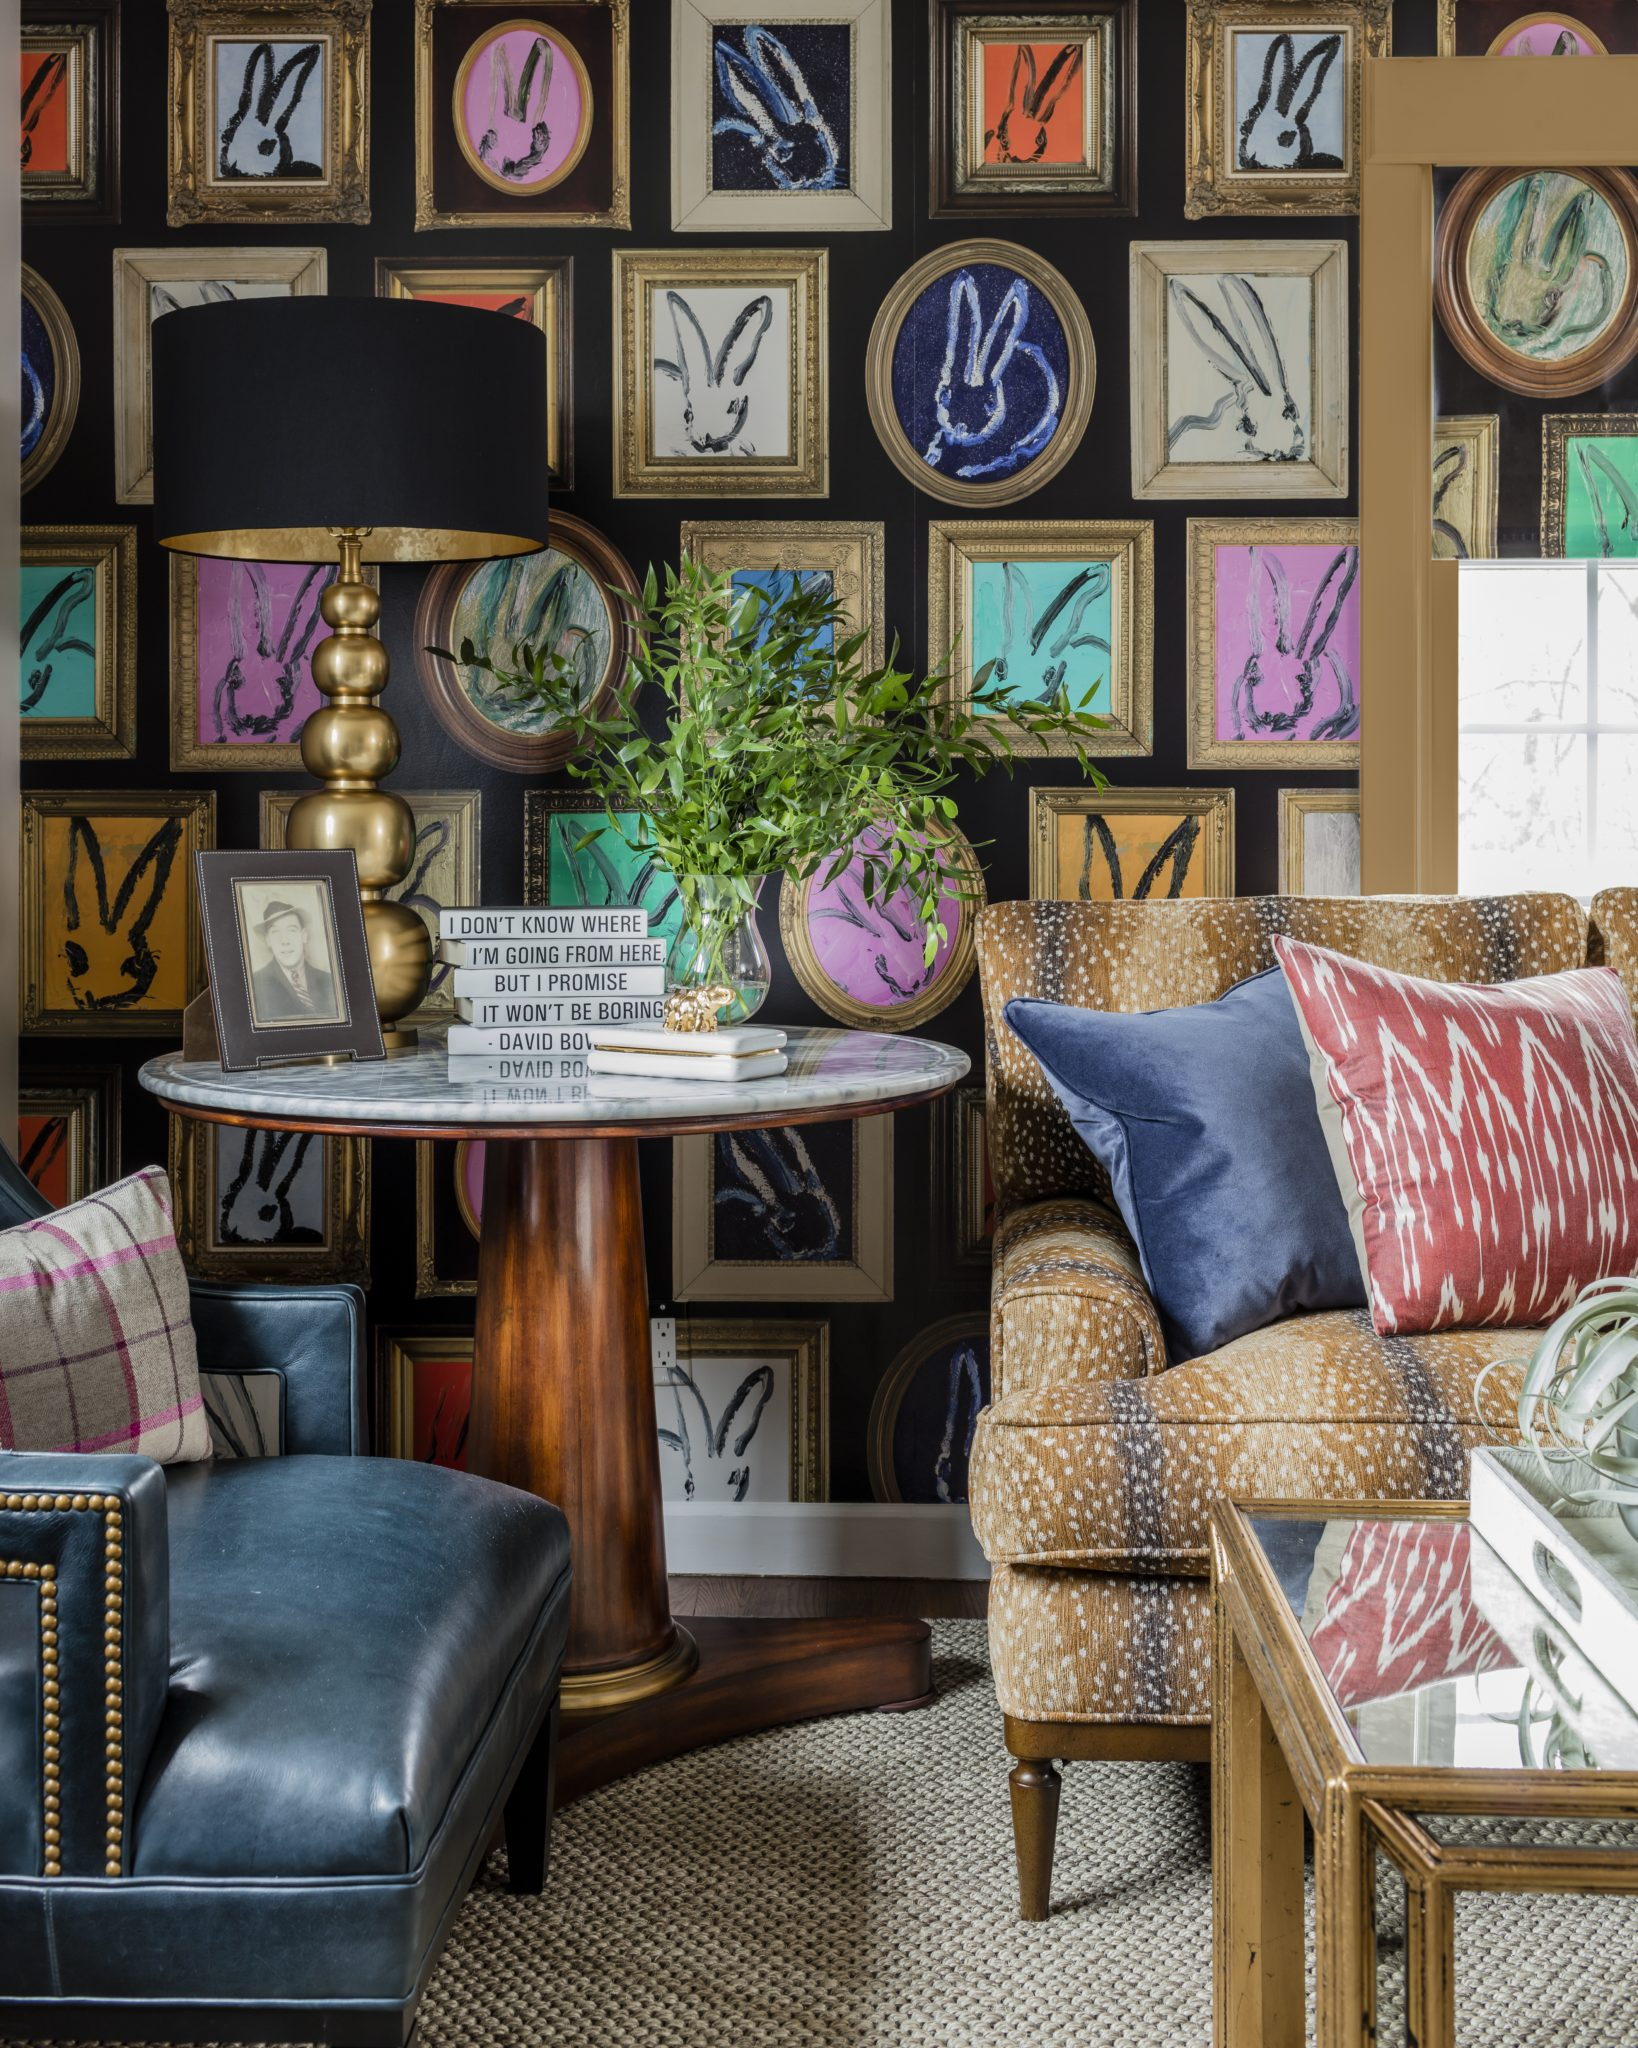 """Over-the-Top Maximalism   Clean, Scandinavian-inspired designs have dominated design for years. Refreshingly, maximalism has returned with a bang to balance out the influence of minimalism, making itself heard with boldwallpapers, heady colors, and personalized accessories. """"I guess I look at minimalisthomes and think, 'does anyone actually live there?'"""" says Robin Gannon, owner ofRobin Gannon Interiorsin Lexington, Massachusetts. """"They look nice but unwelcoming. I love a layered look because that looks likea collection of someone's life, loved and lived.""""  Maximalist interiors come with their own challenges— namely, how to achieve boldness without busyness, and how to seem collected without chaos. """"In the end, 'busy'or 'not busy'is very subjective, so it has to be a client that appreciates the 'collected'look,"""" advises Gannon. She suggests paying careful attention to scale of a pattern, so that patterns vary in size and don't compete with each other. """"I just use a limitedcolor palette, repeating the colorwith different pattern sizes —sometimes in different tints or shades—which keeps it looking interesting but not too busy,"""" she says. """"I also make sure that I pay attention to the chroma of a palette. Keeping the brightness down helps keep your eye moving across the room so it doesn't get stuck."""""""